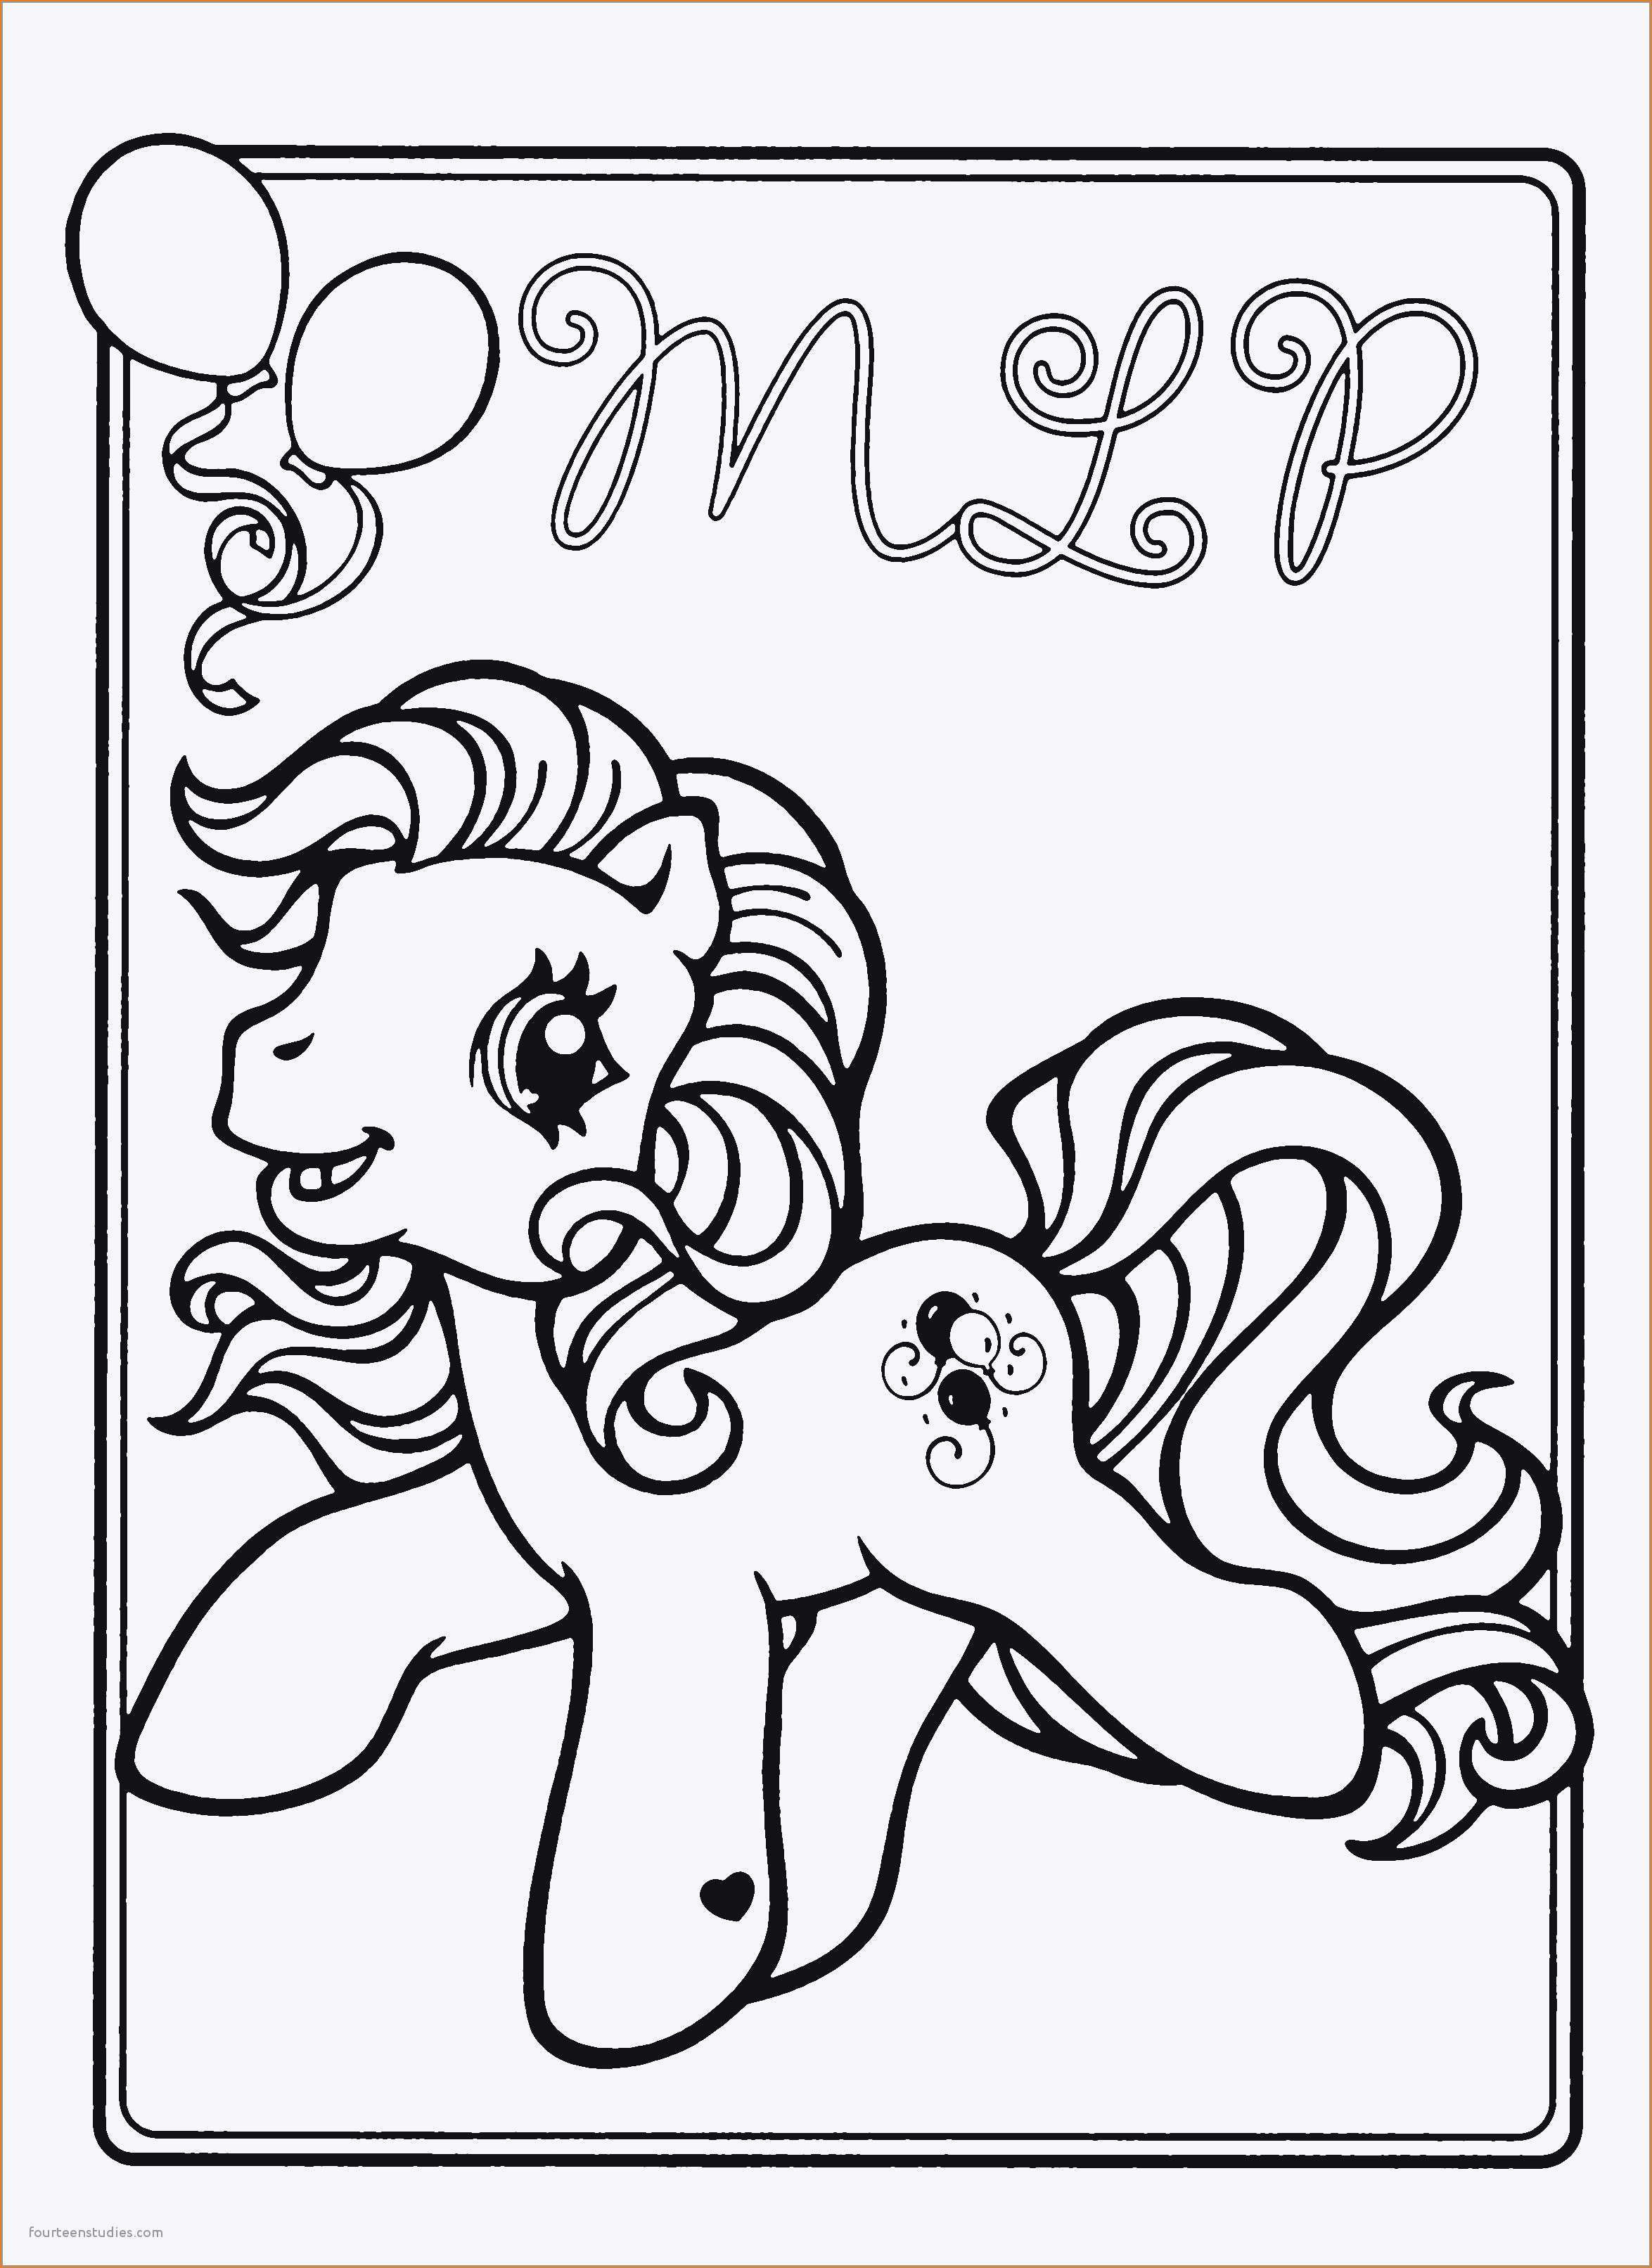 Anime Girl Ausmalbilder Das Beste Von Mlp Equestria Girls Coloring Pages Free My Little Pony Equestria Bilder